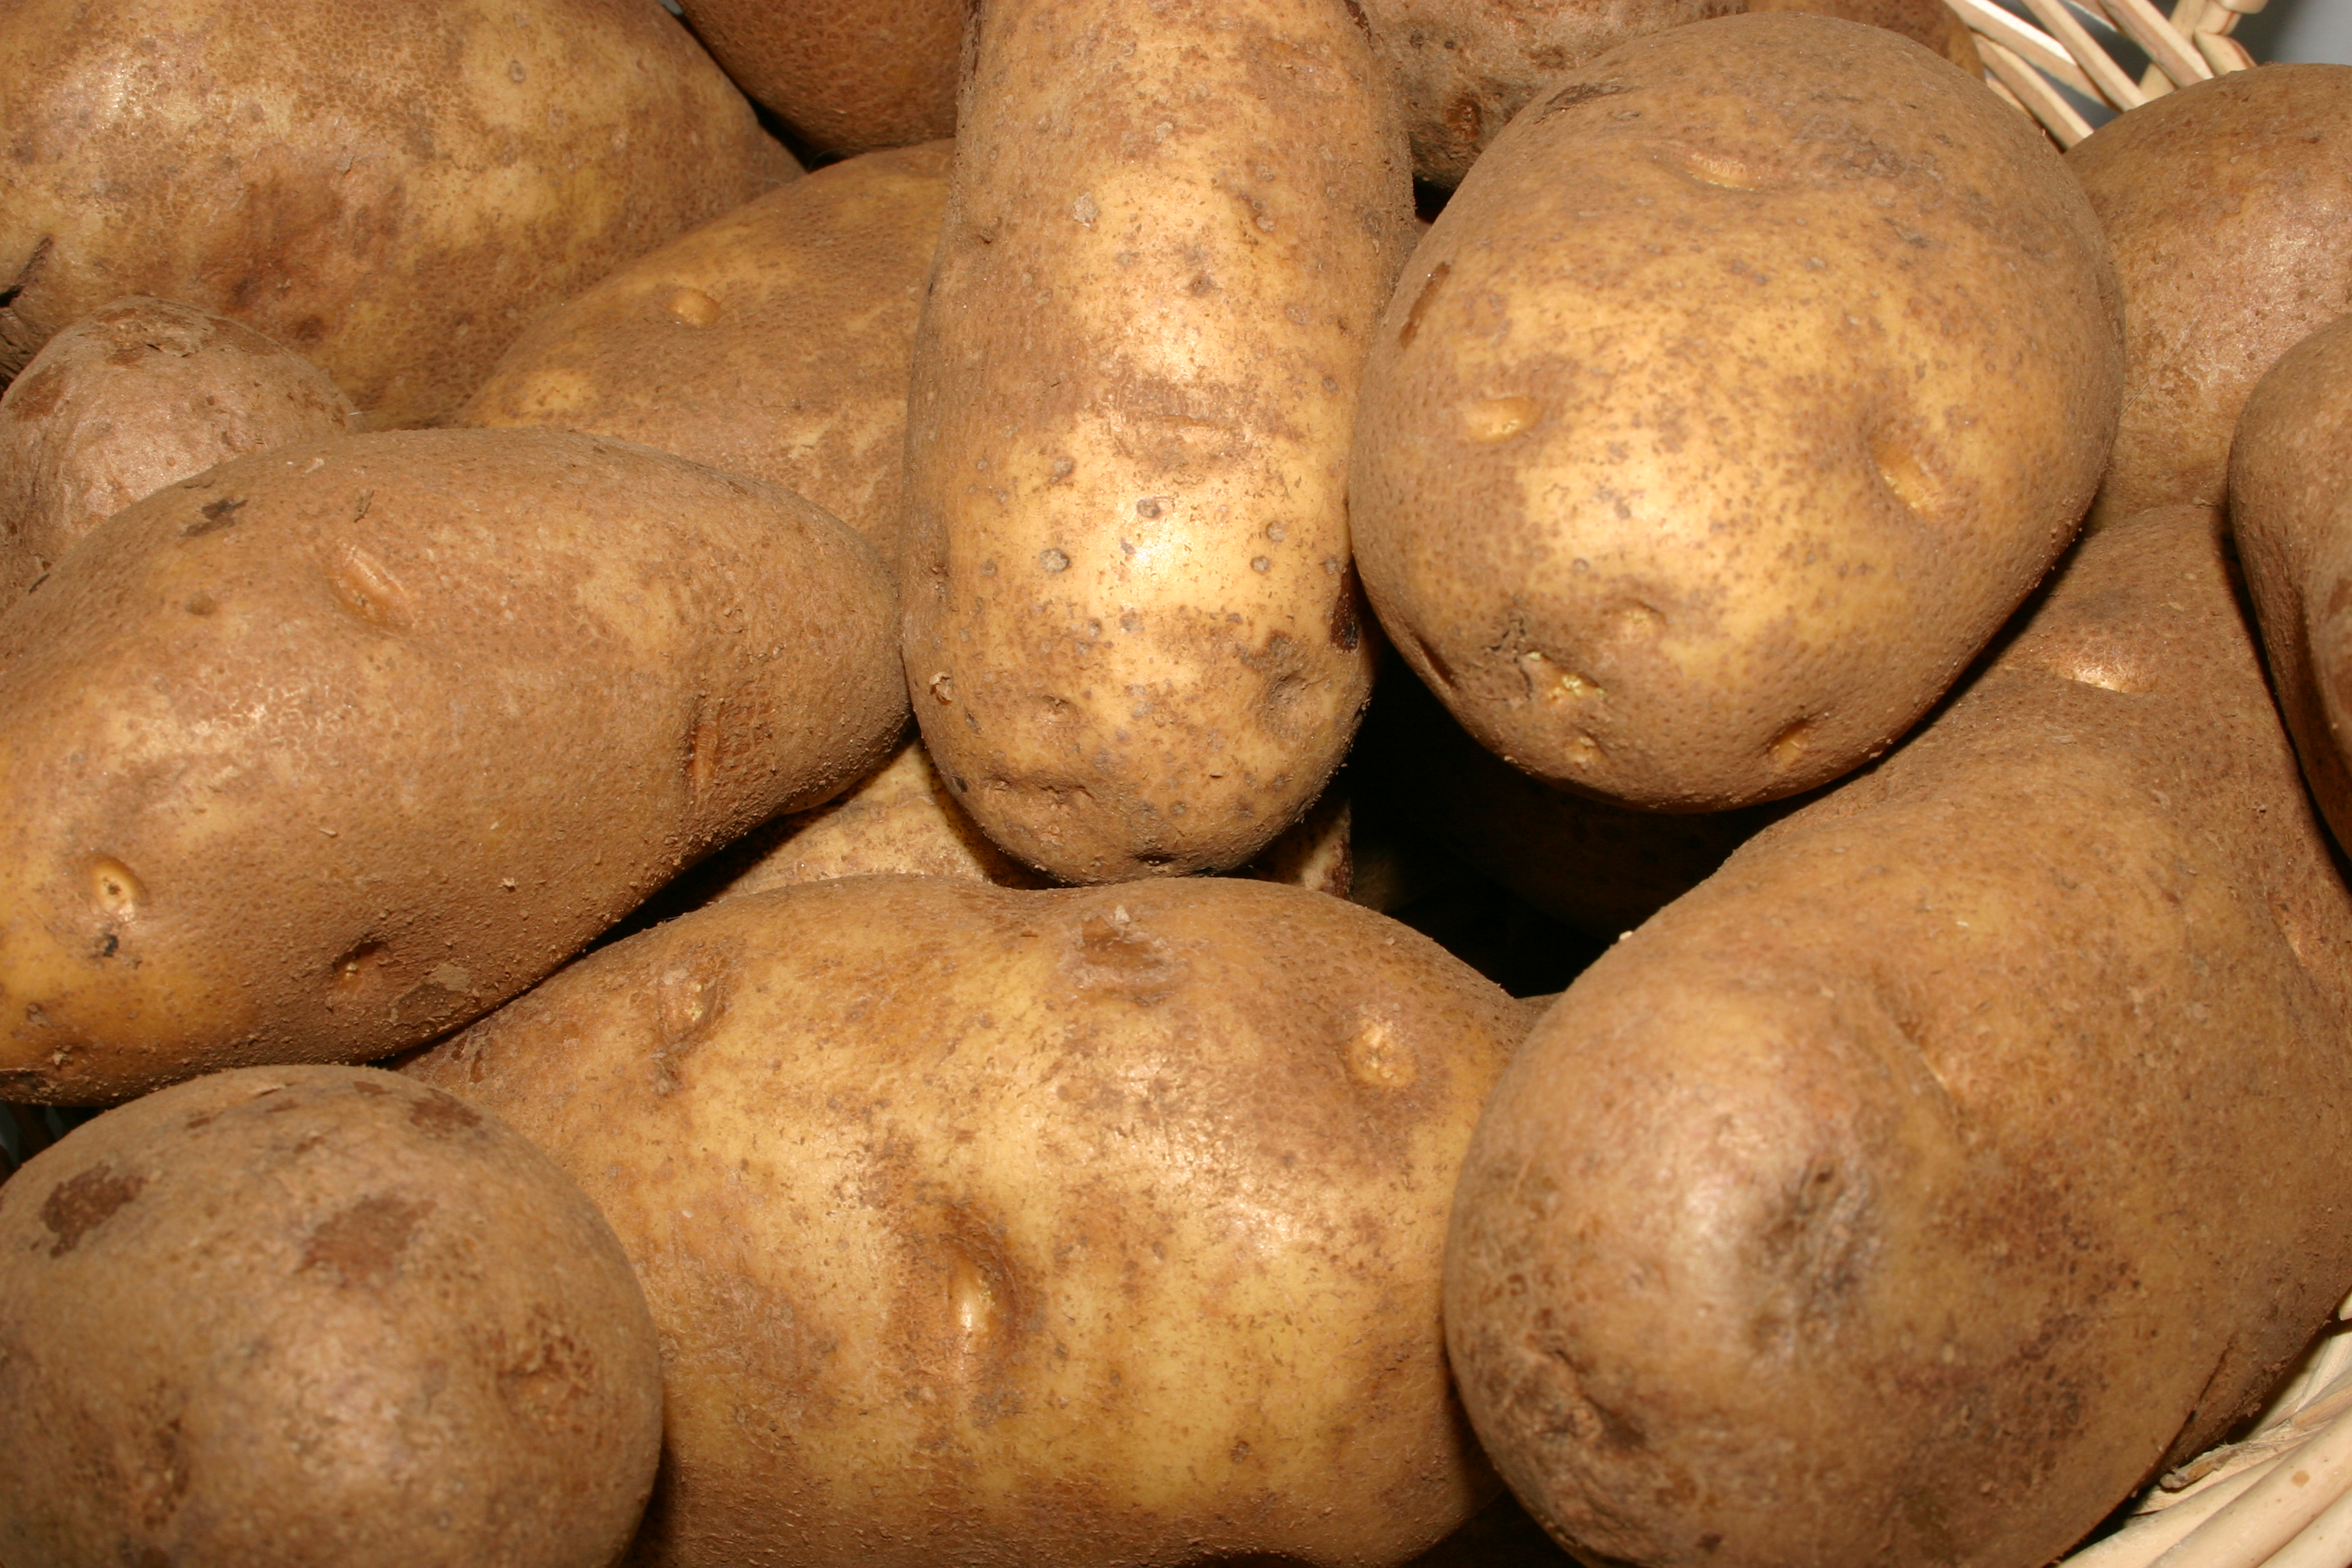 Potato texture background.